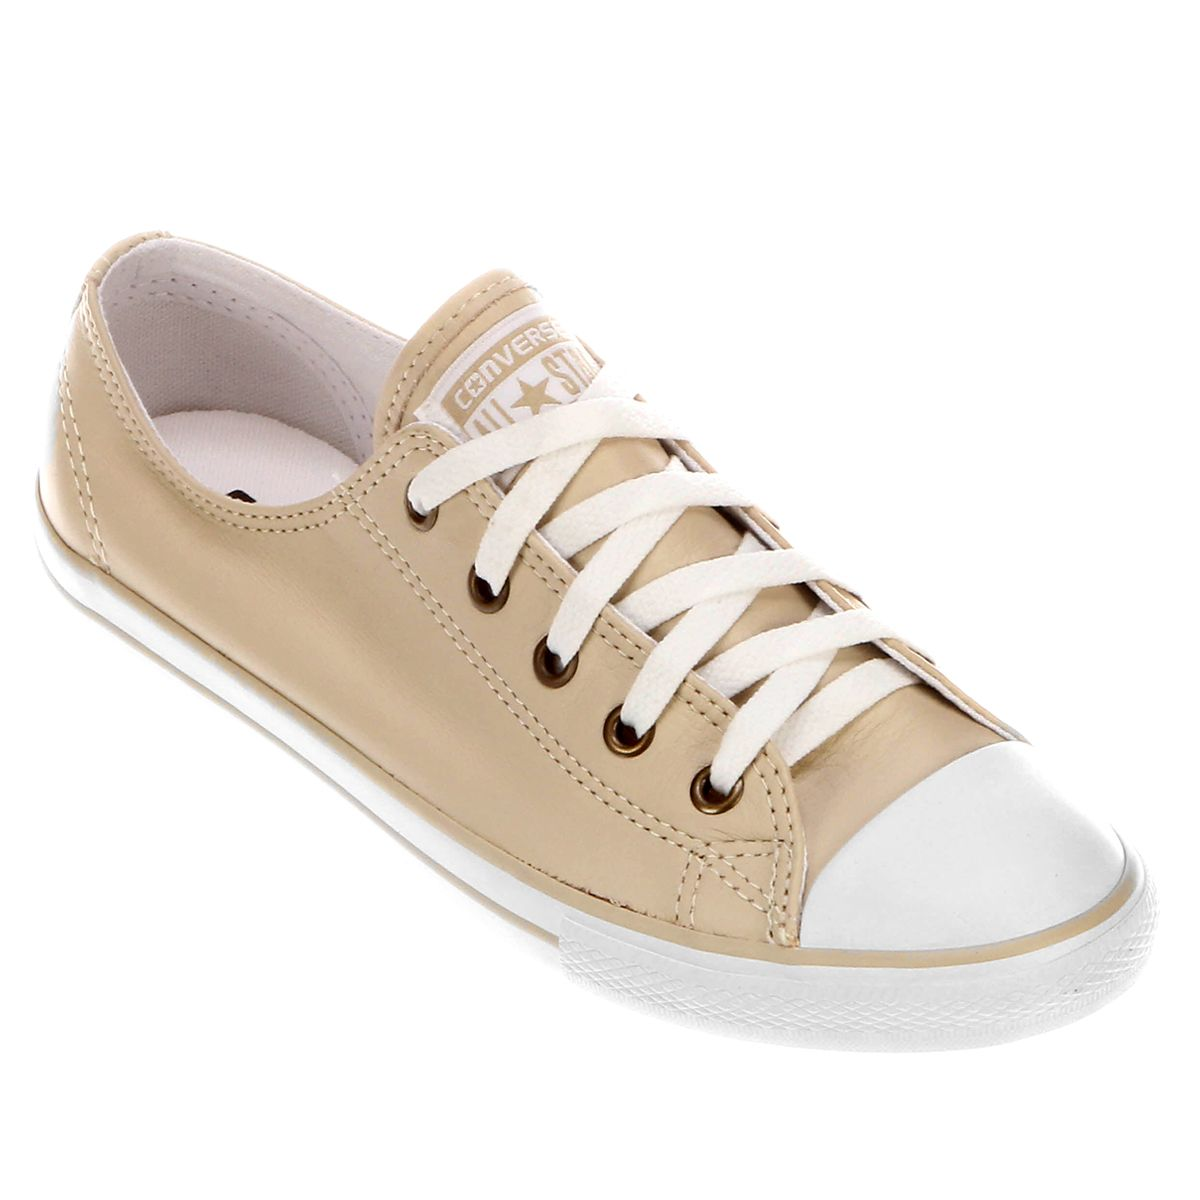 Tenis Converse All Star Ct As Dainty Leather Ox Bege Com